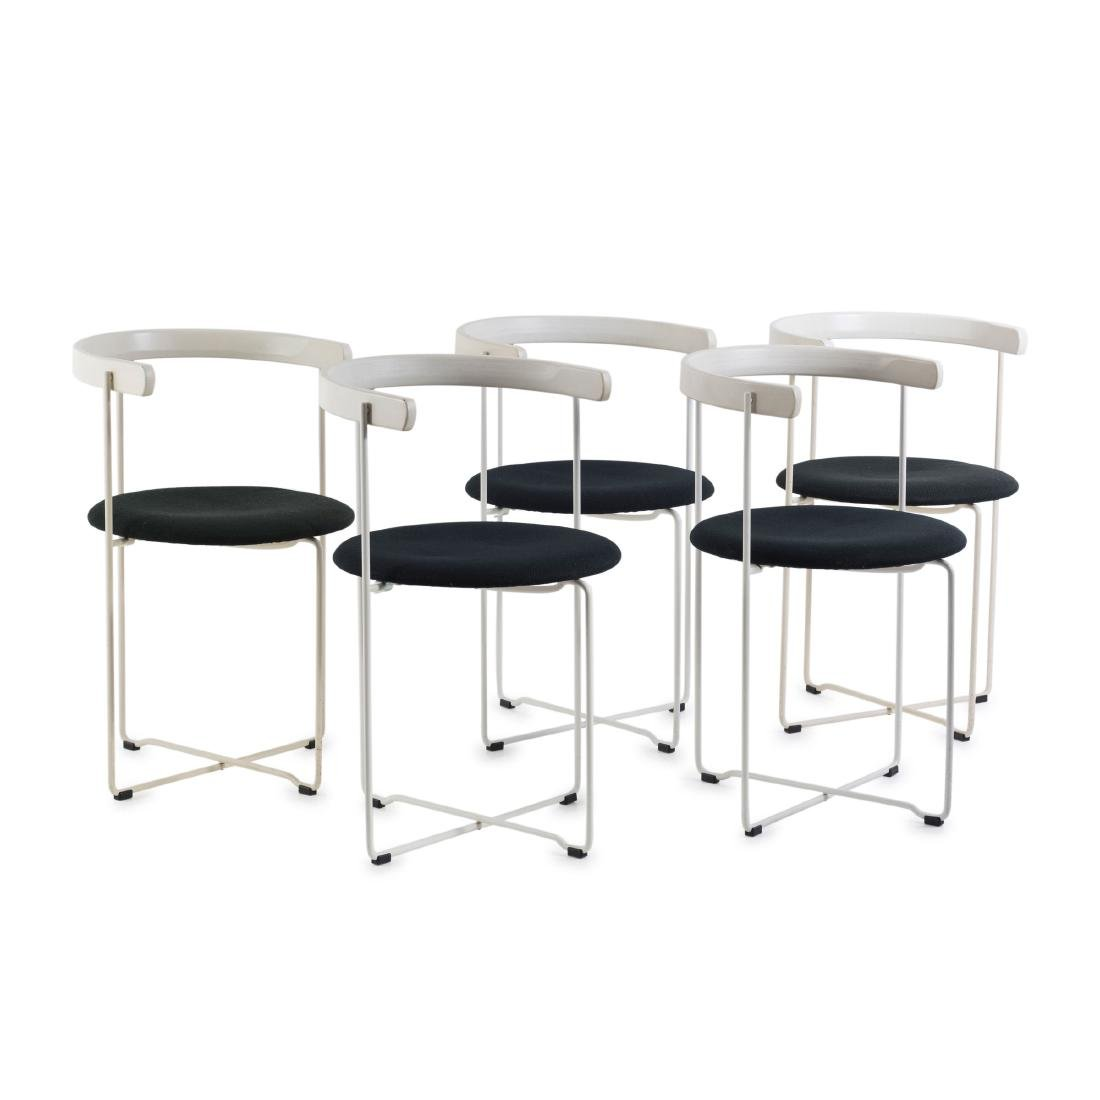 Five 'Sóley' folding chairs, 1983/84